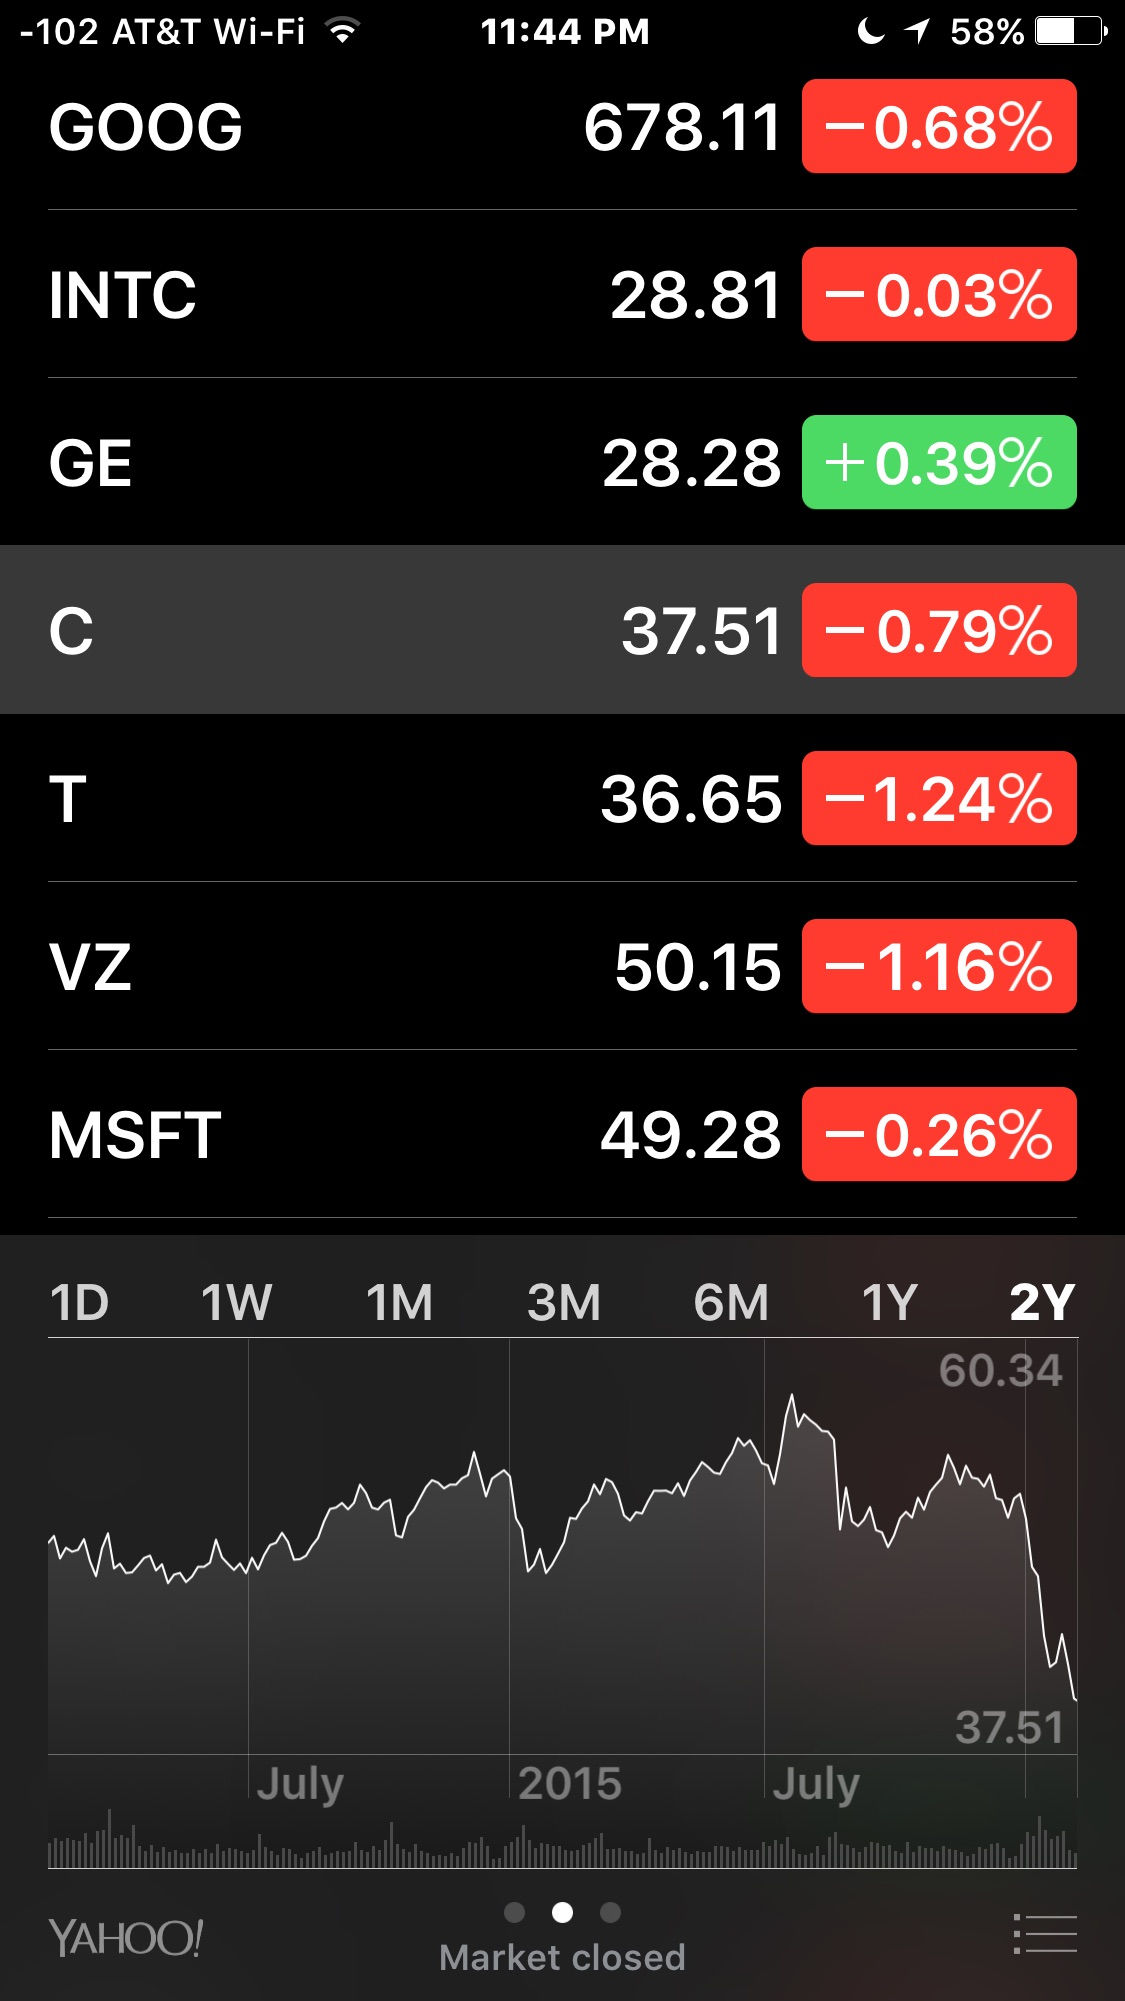 See long term performance of stocks and markets in iPhone Stocks app